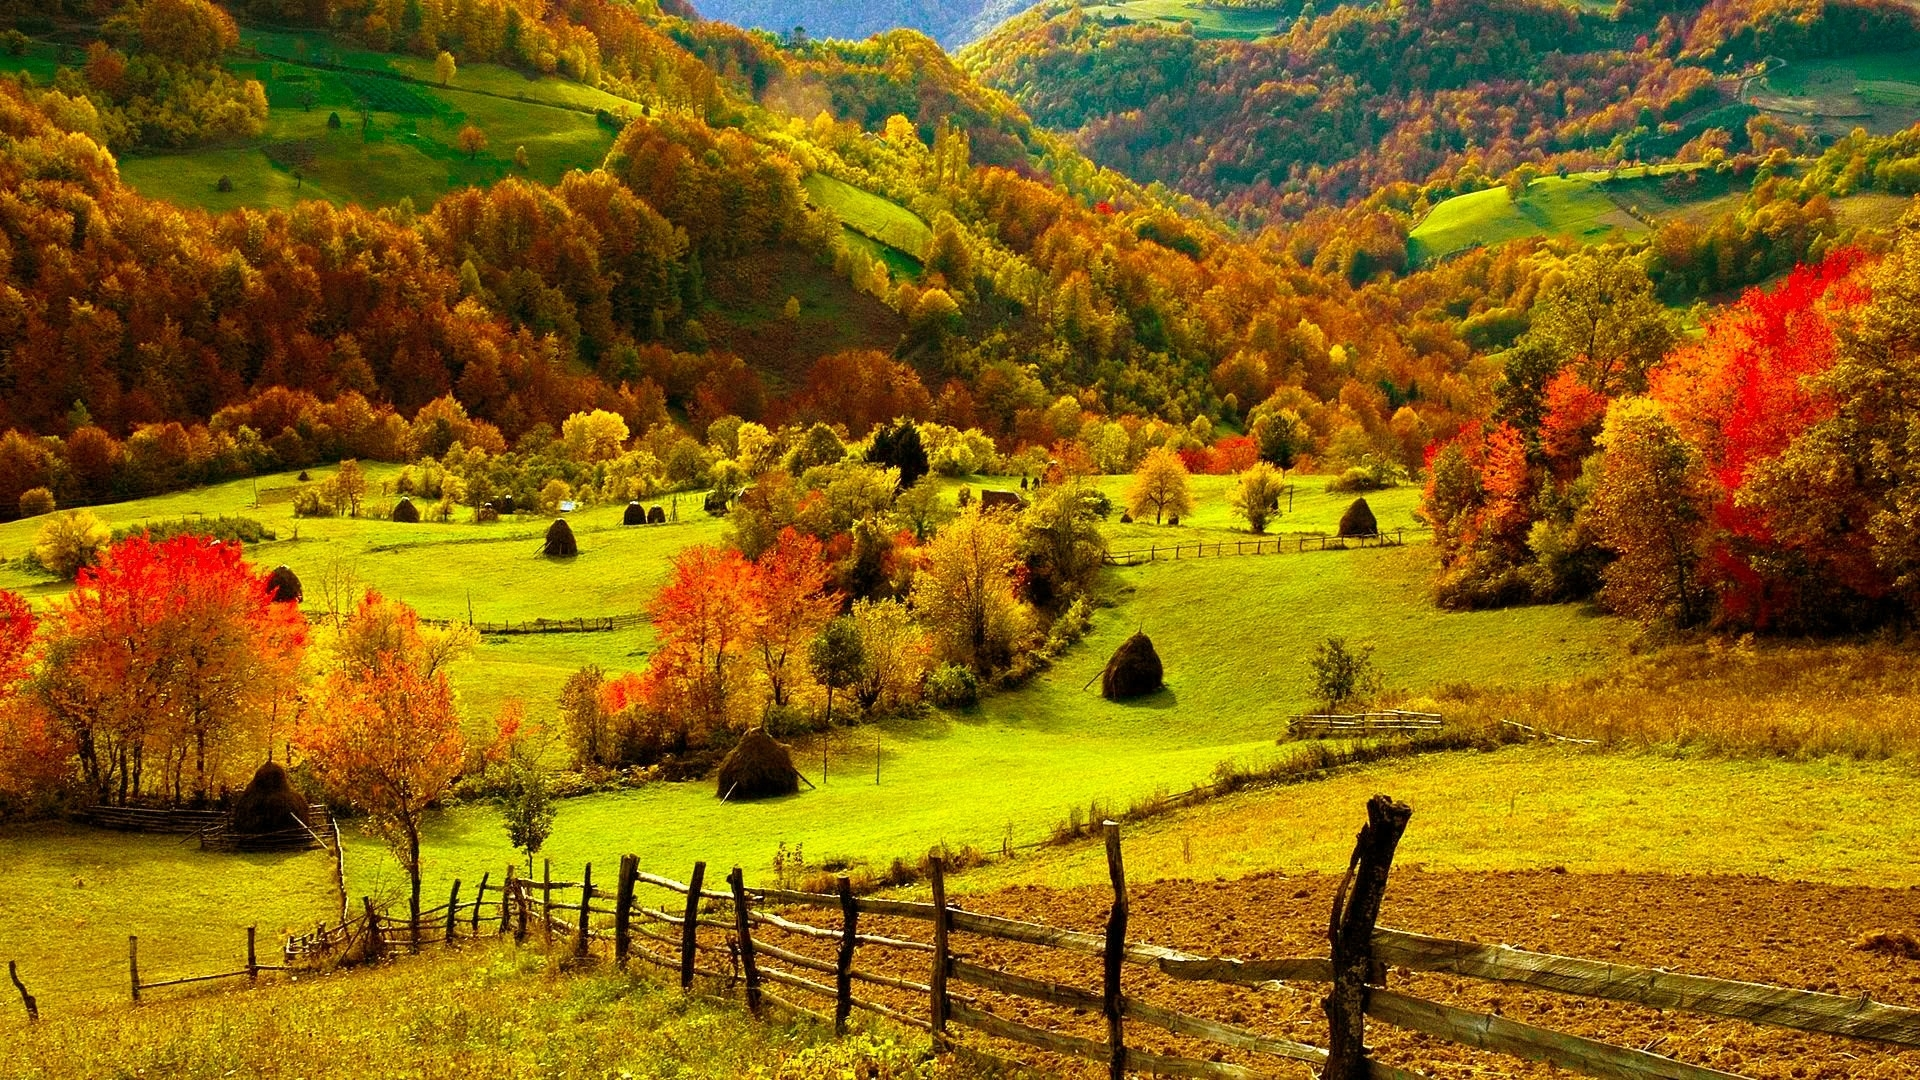 fall seasons leaves color scenic view bright wallpaper background 1920x1080